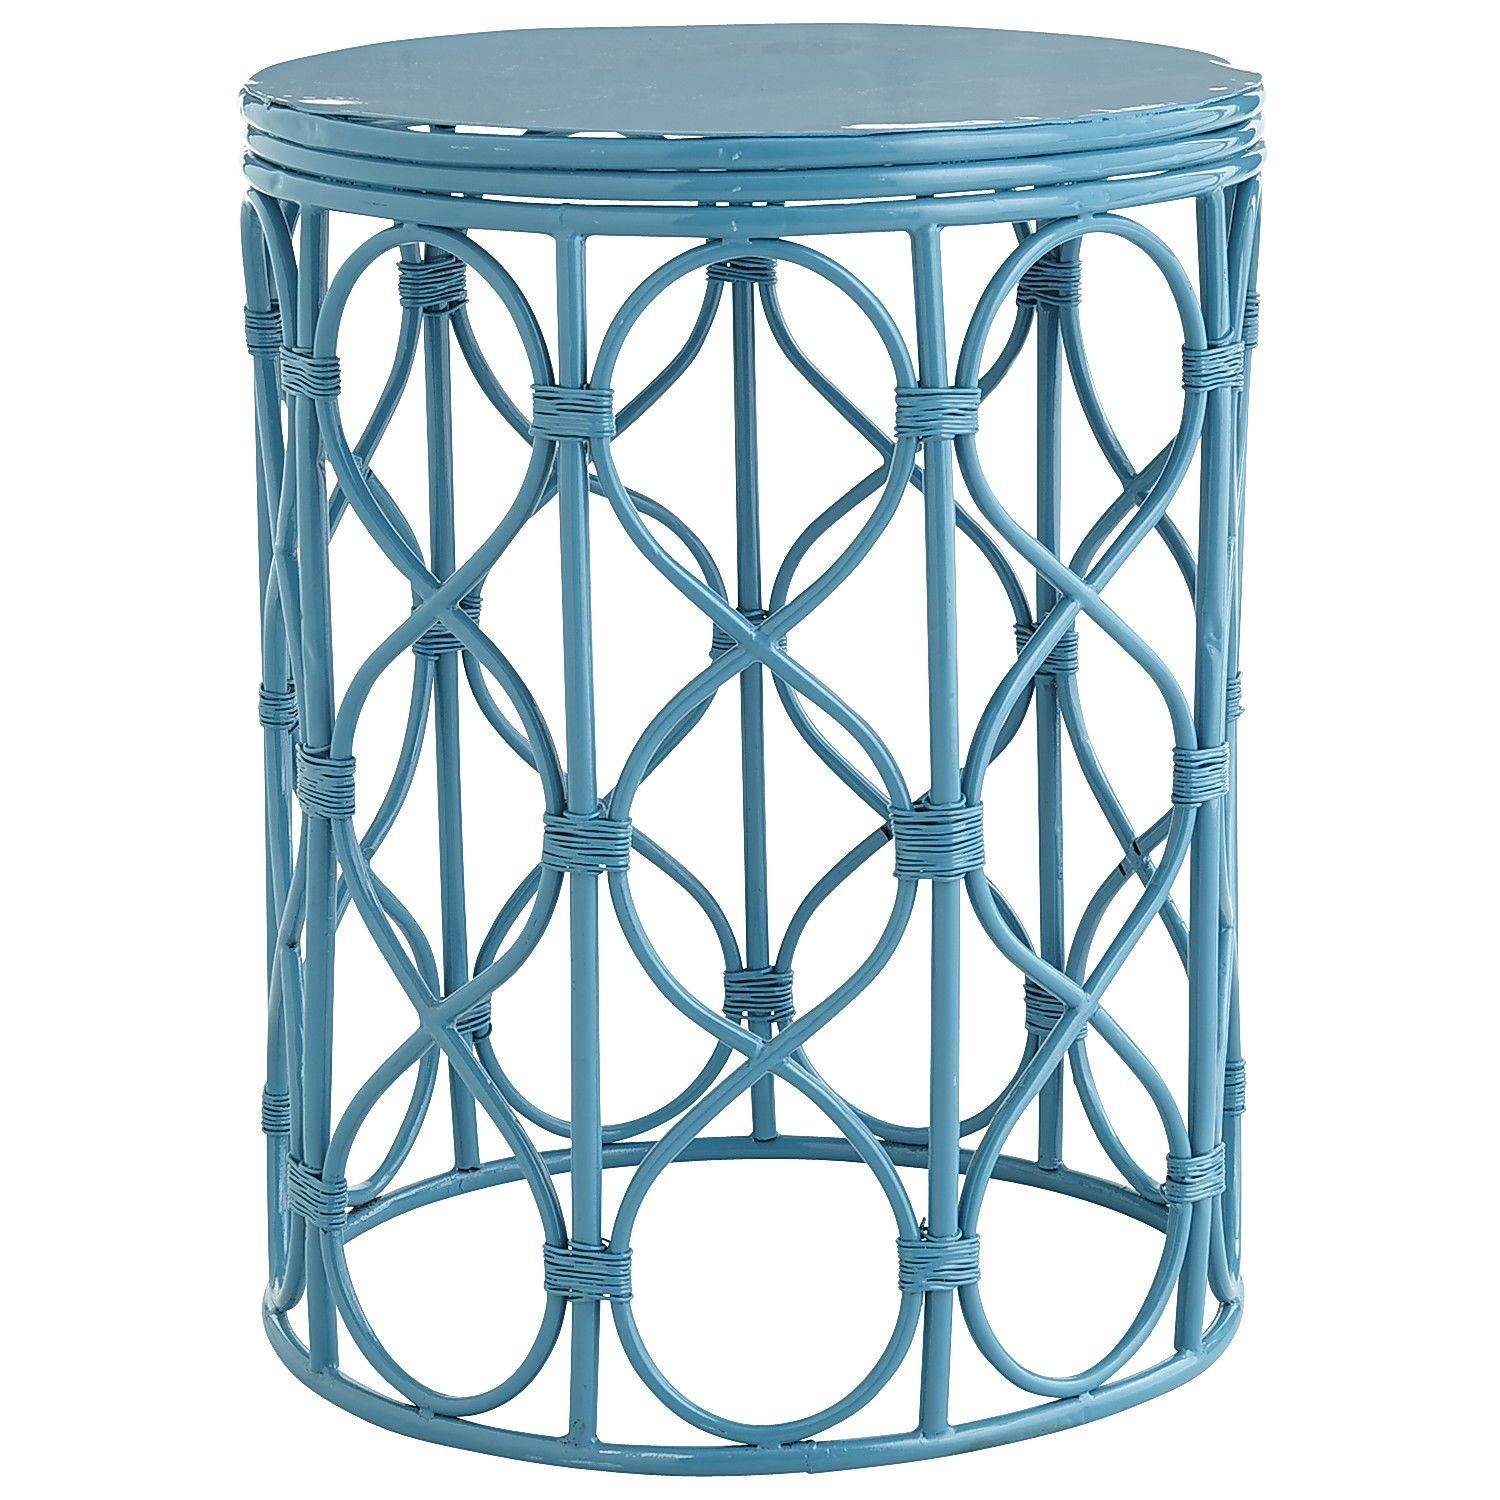 swirl drum accent table blue for screened porch victorian beach outdoor side little tikes garden office desk with drawers clearance dining room chairs gallerie sofa decorative